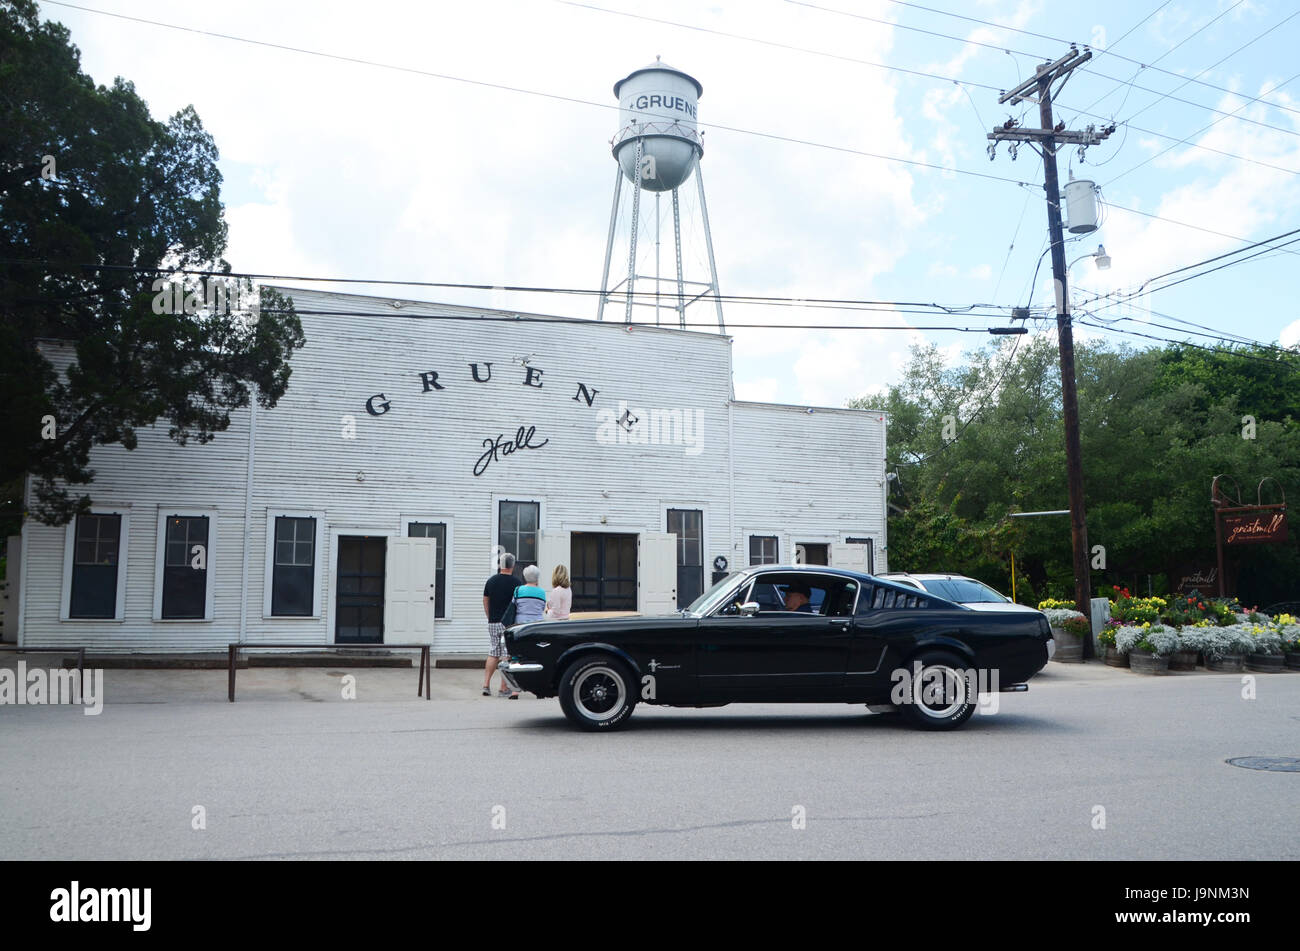 a black classic mustang passes in front of gruene hall texas - Stock Image